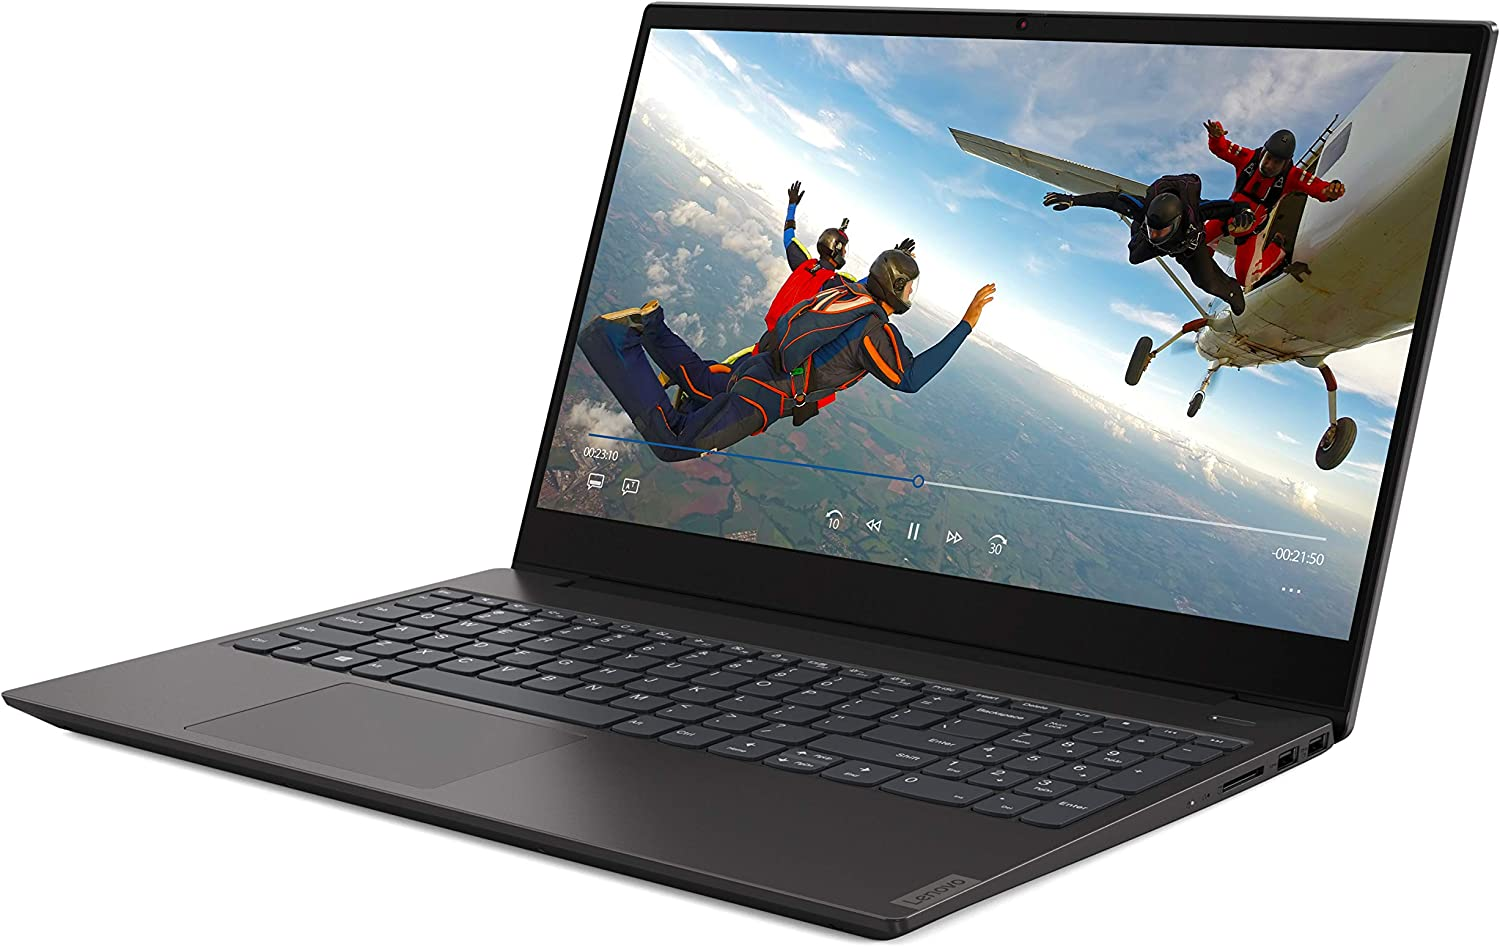 "Lenovo ideapad S340 15.6"" HD LED Backlit Anti-Glare Display Laptop, Intel Core i3-8145U 2.1GHz up to 3.9GHz, 8GB DDR4, 128GB NVMe SSD, Bluetooth, USB 3.1, HDMI, Webcam, Windows 10"